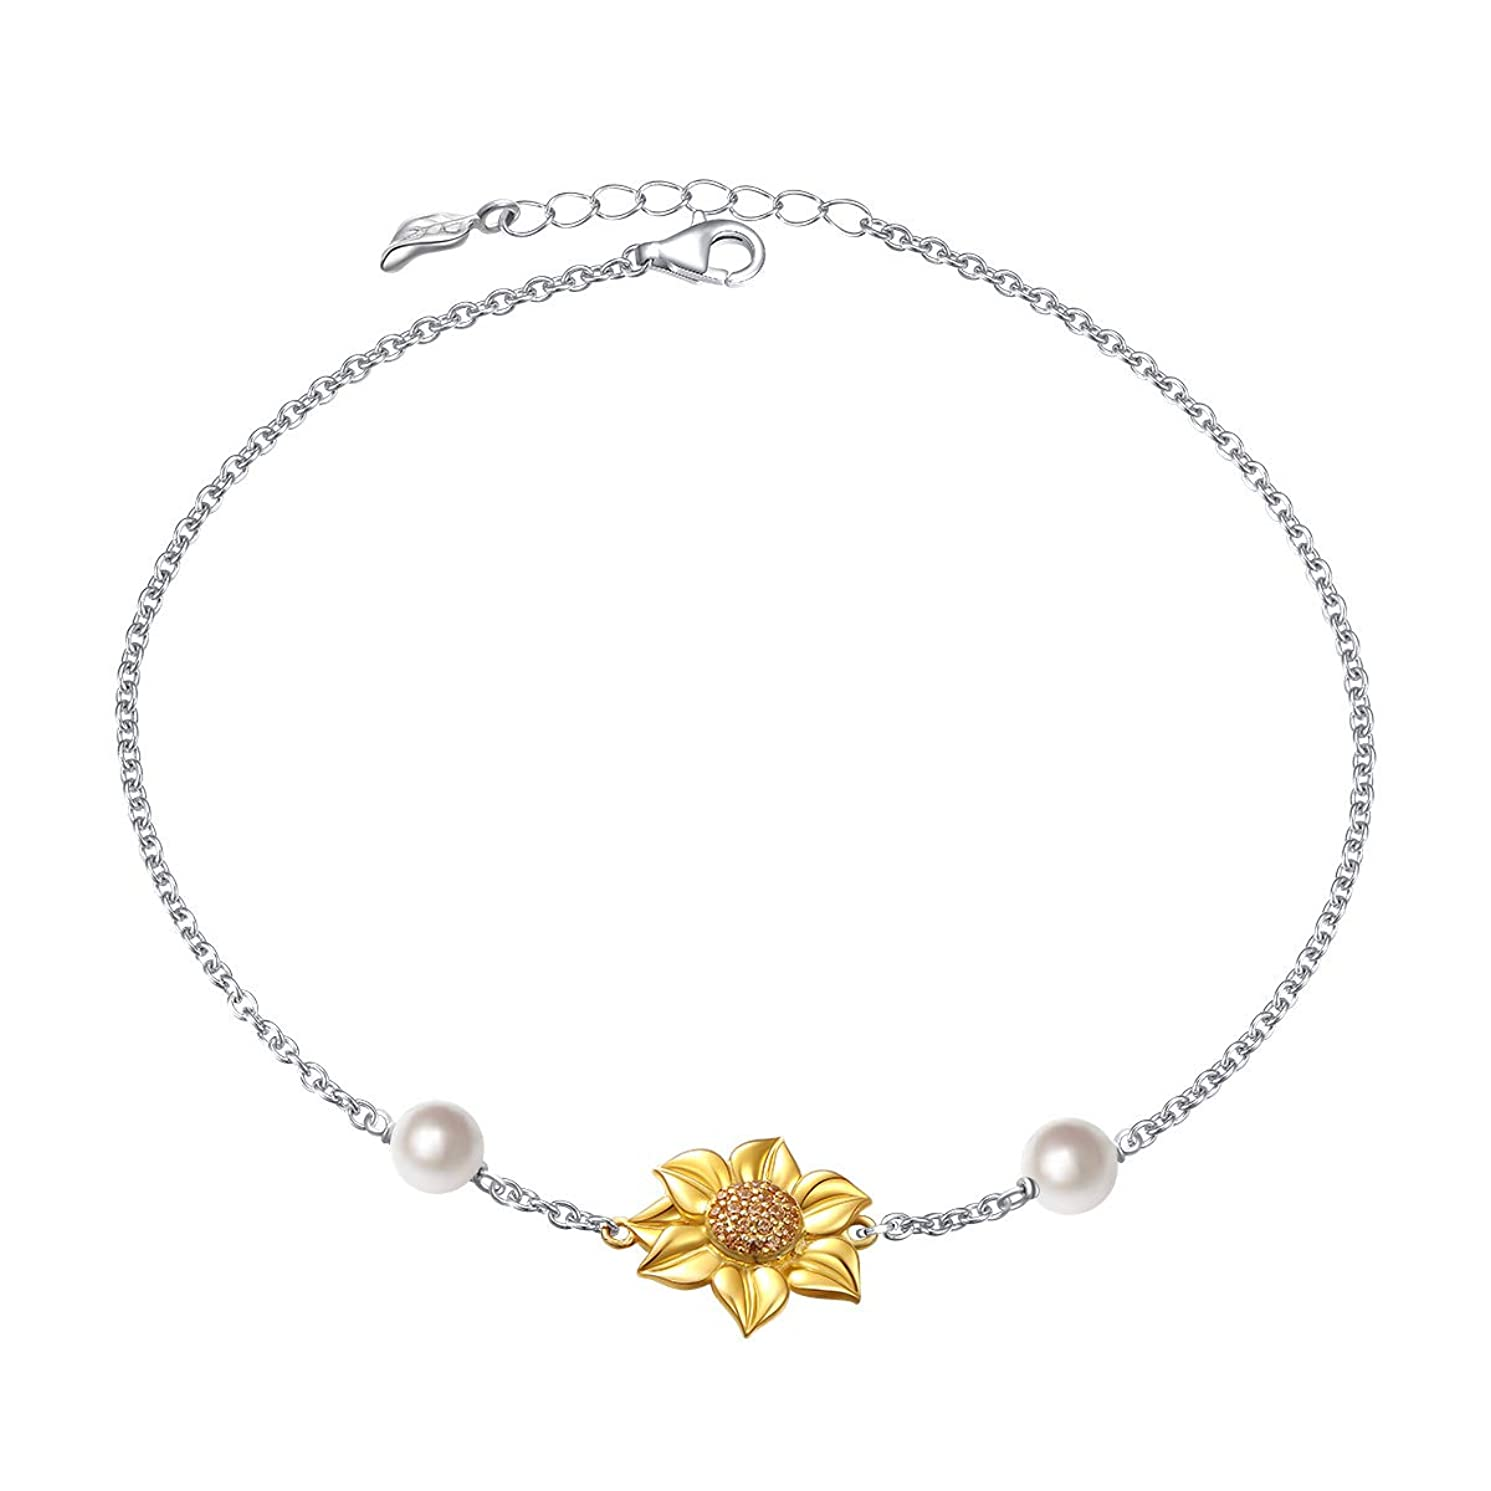 You Are My Sunshine Sunflower Gold Plated S925 Sterling Silver Pendant Necklace Earrings Ring Bracelet Anklet